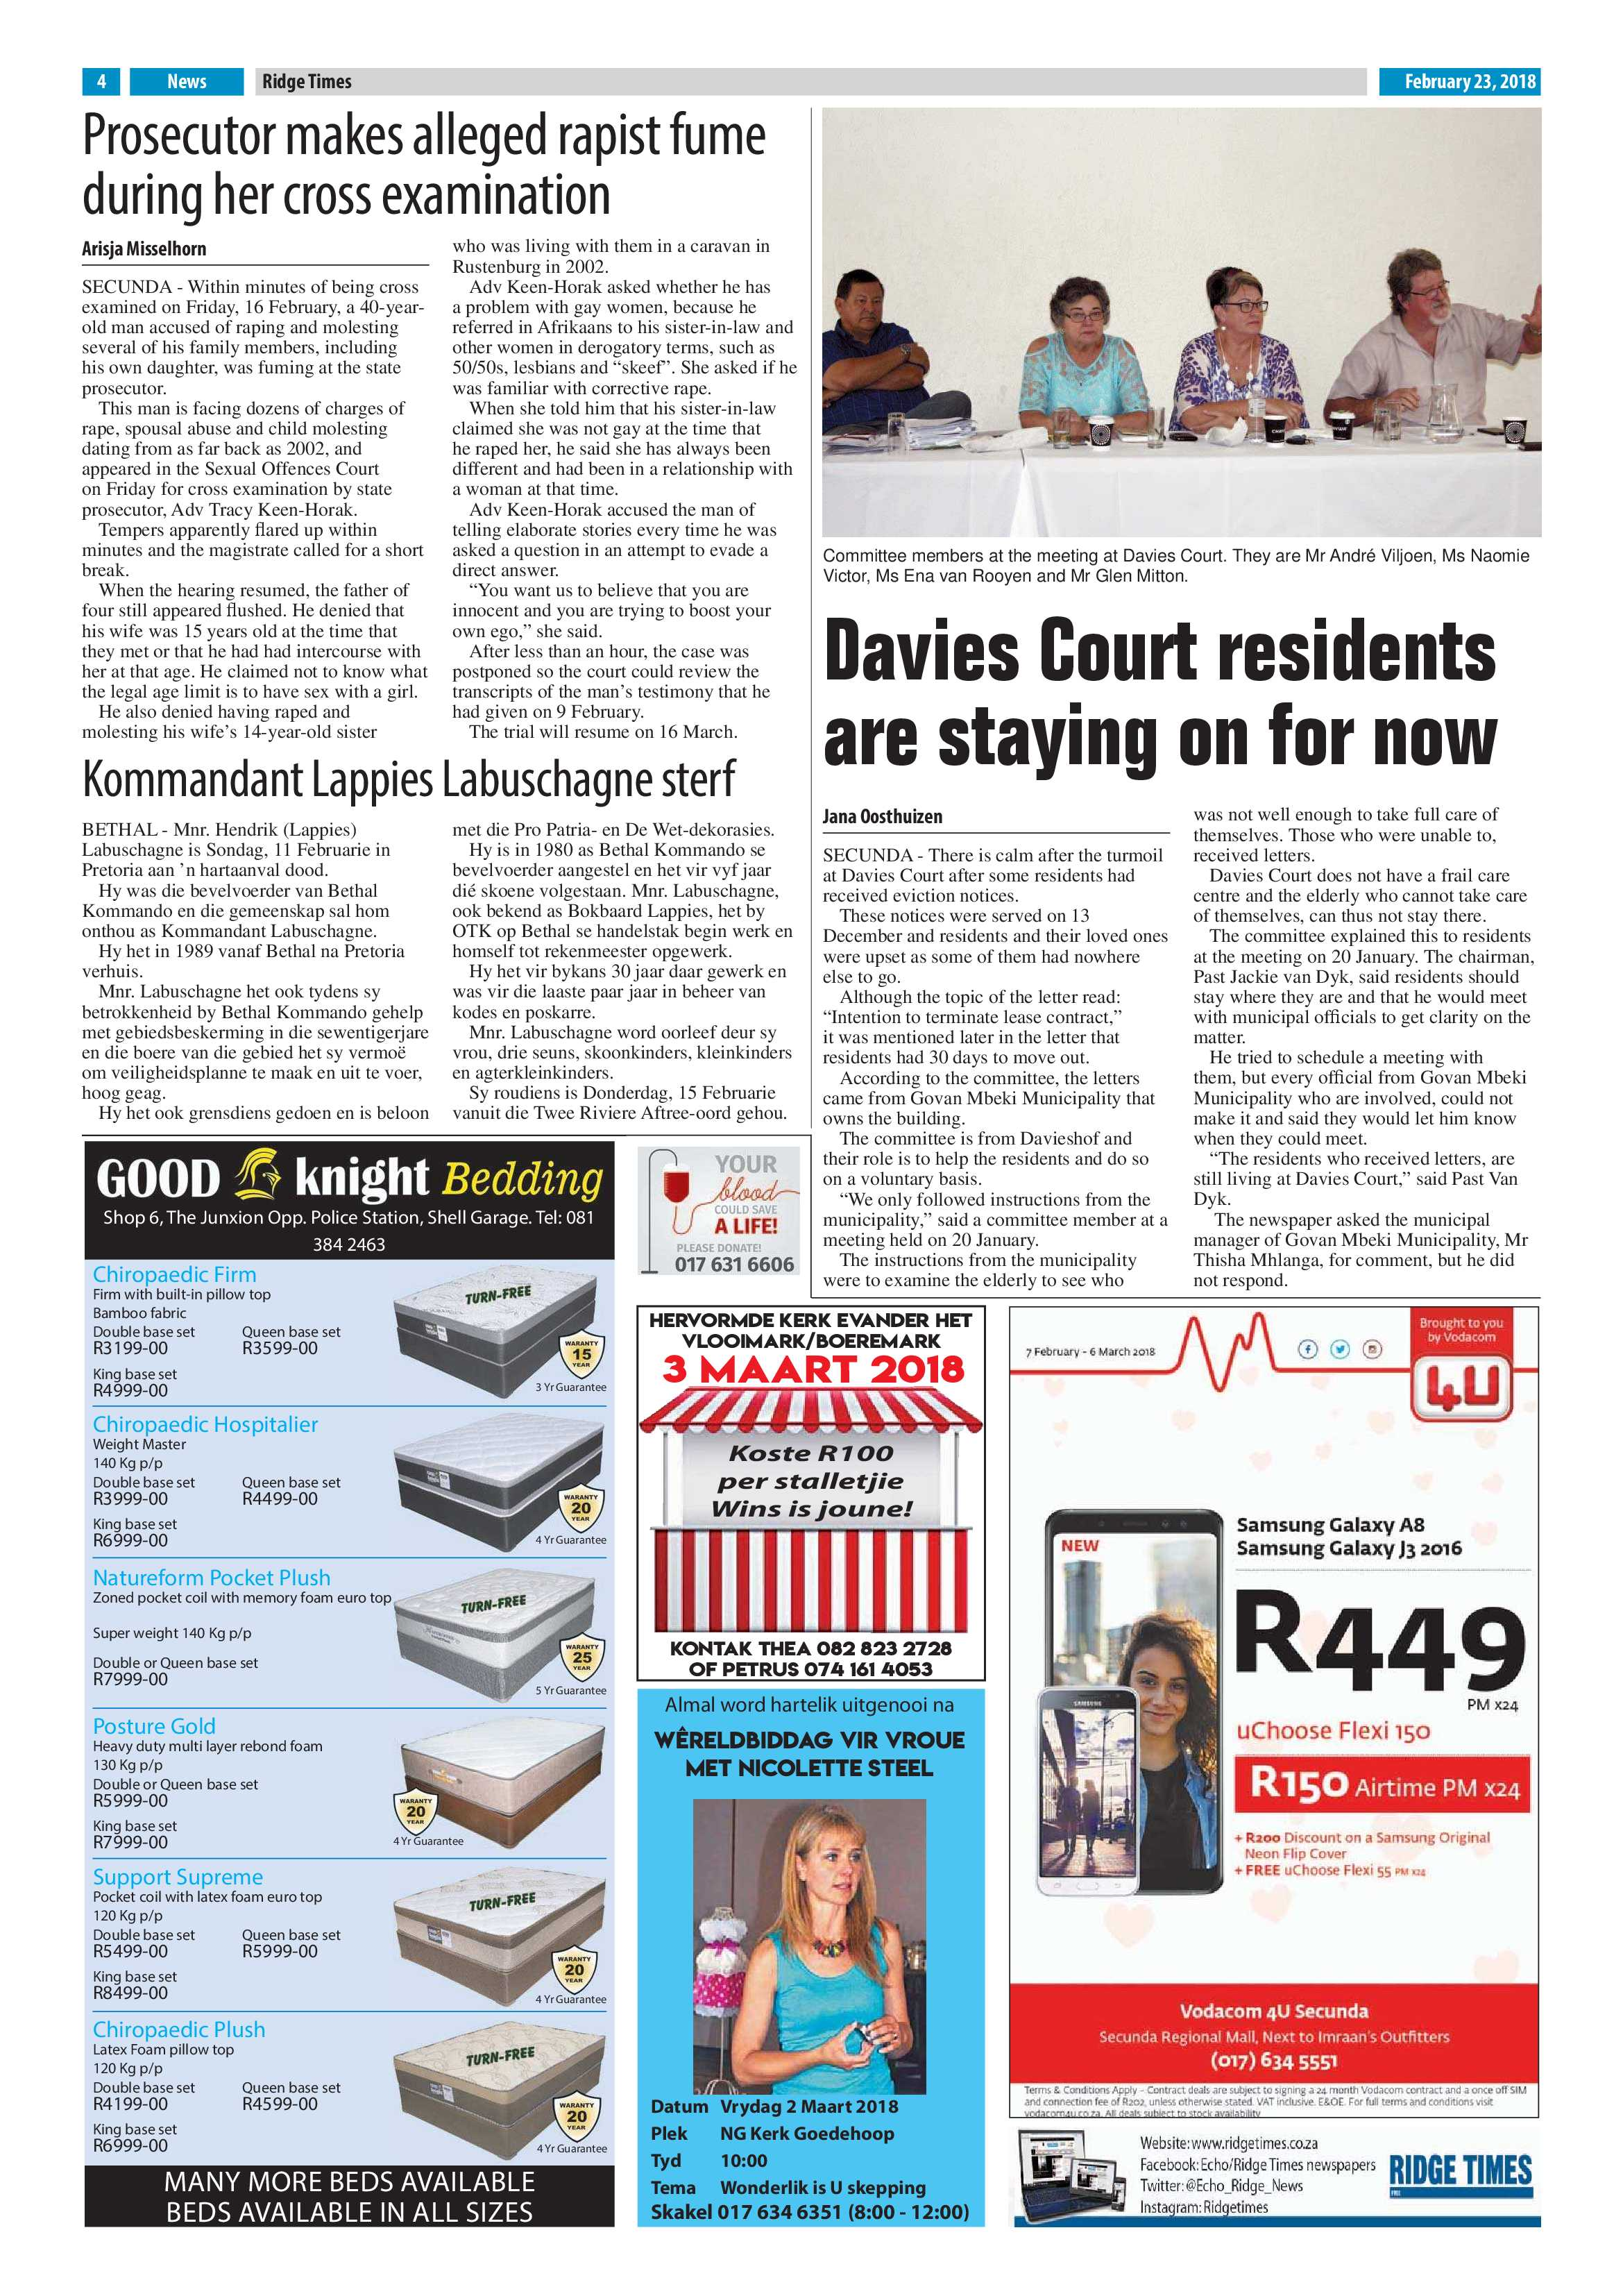 ridge-times-23-february-2018-epapers-page-4